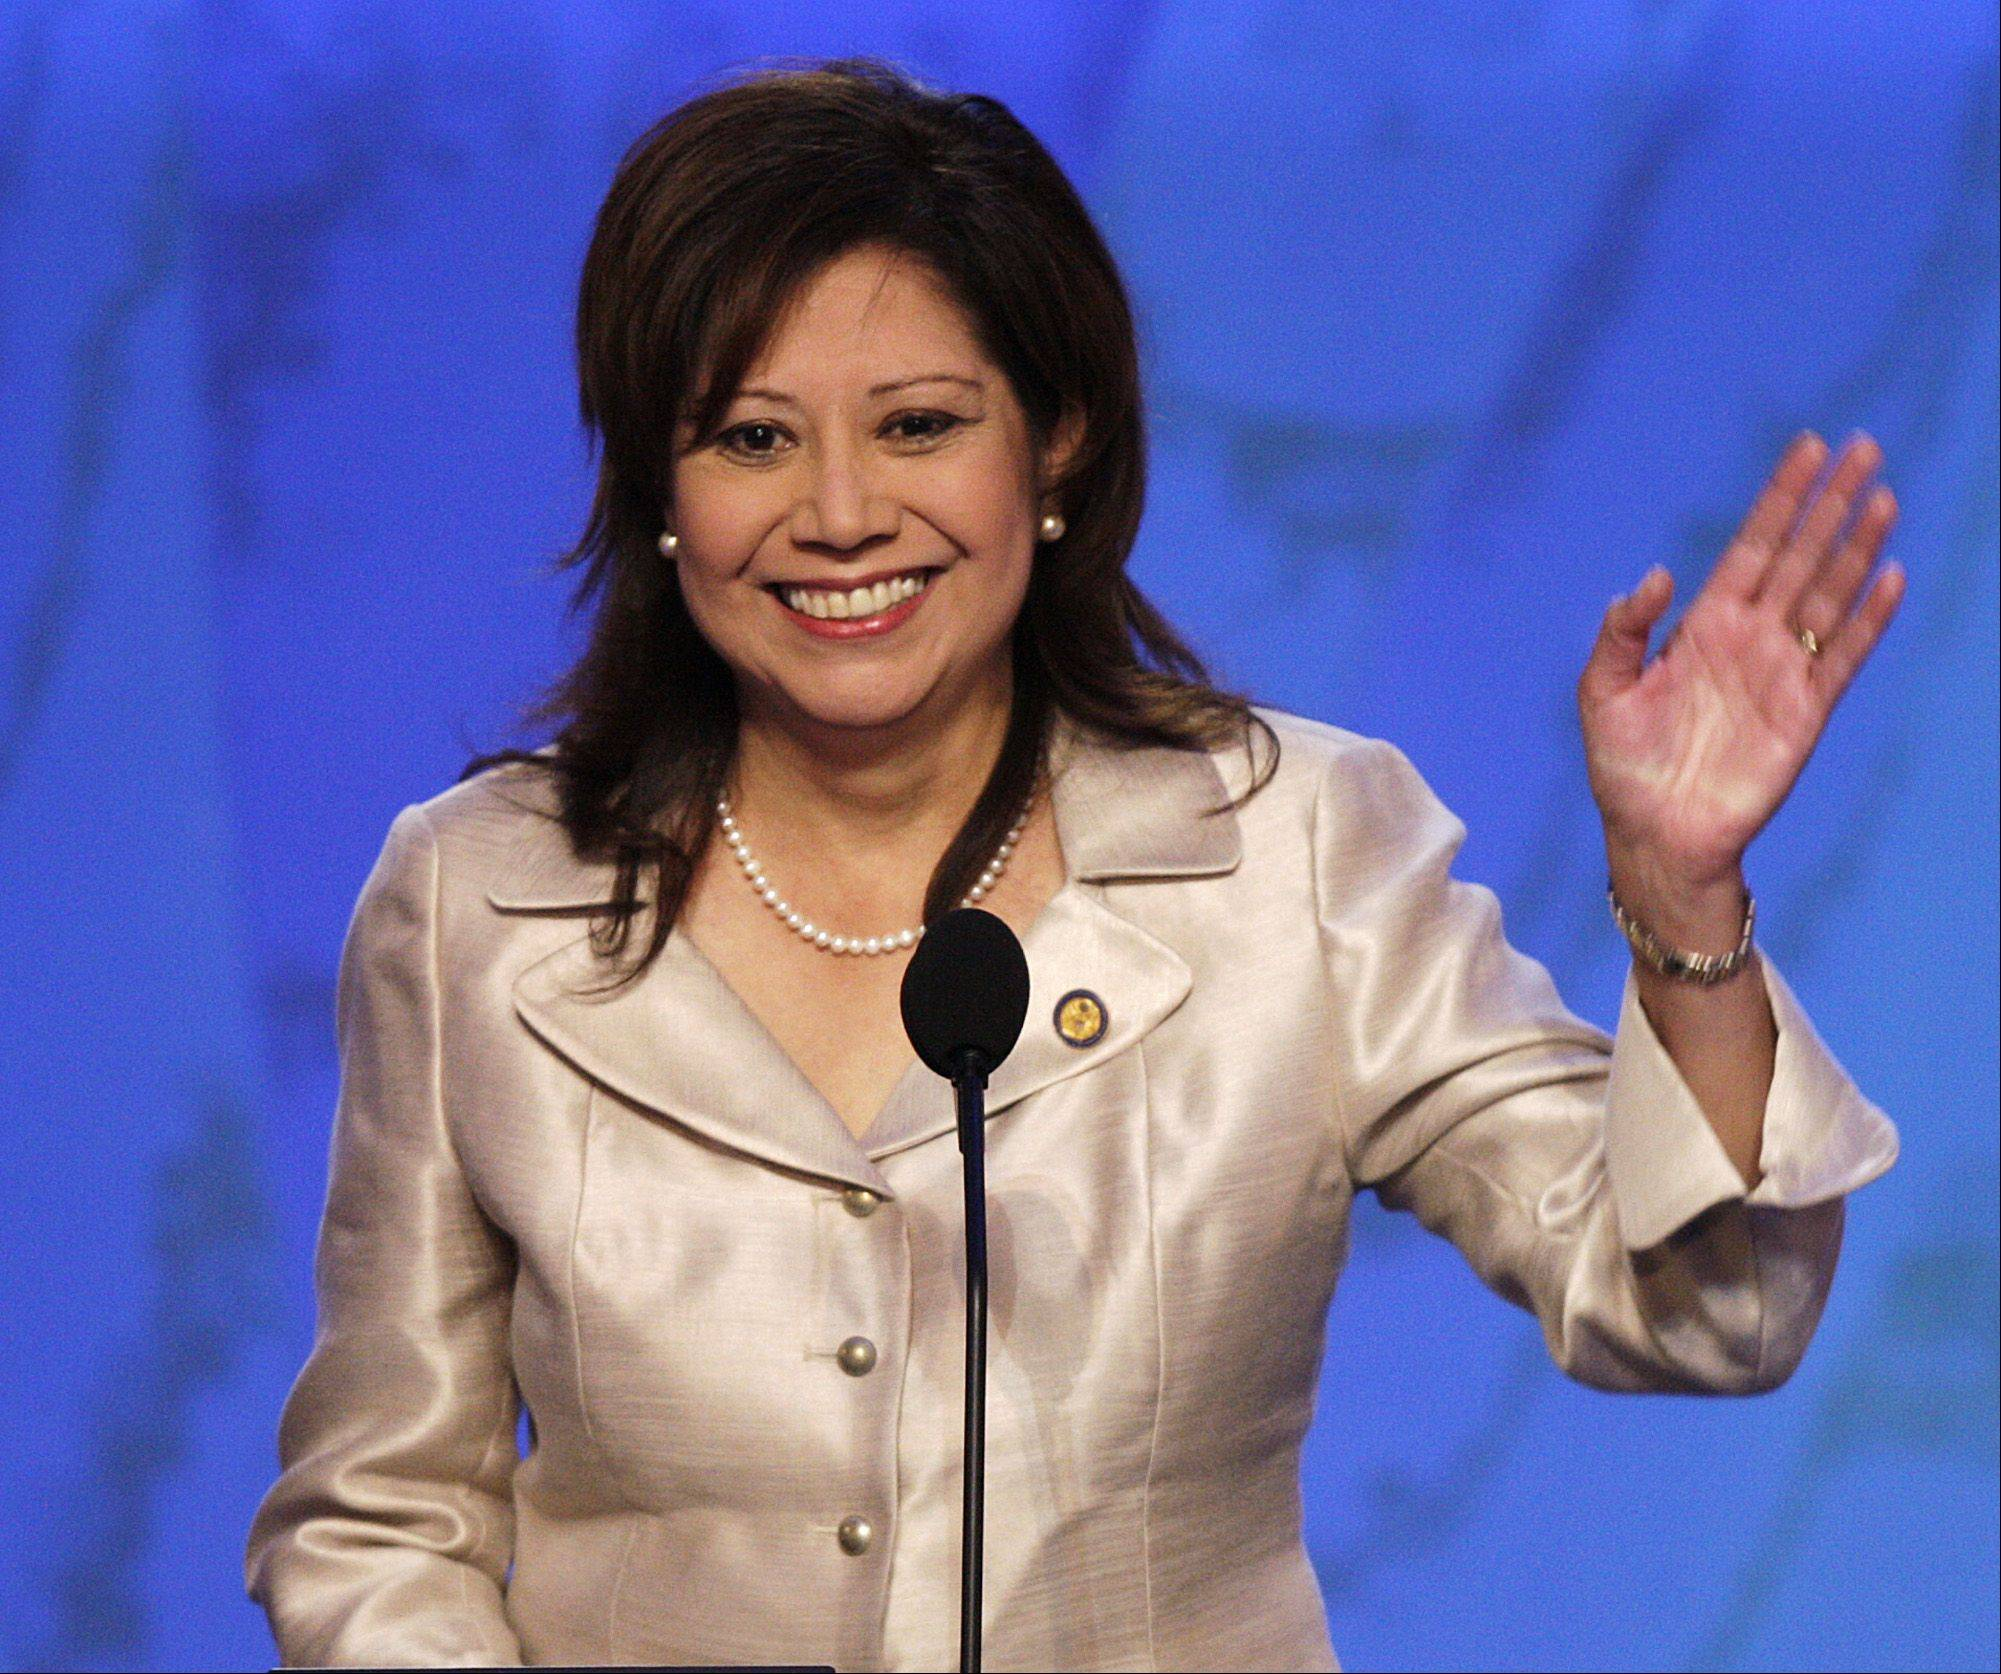 Labor Secretary Hilda Solis, seen here, is resigning and three other members of the president�s Cabinet are deciding to stay on amid concerns about diversity in Barack Obama�s inner circle.